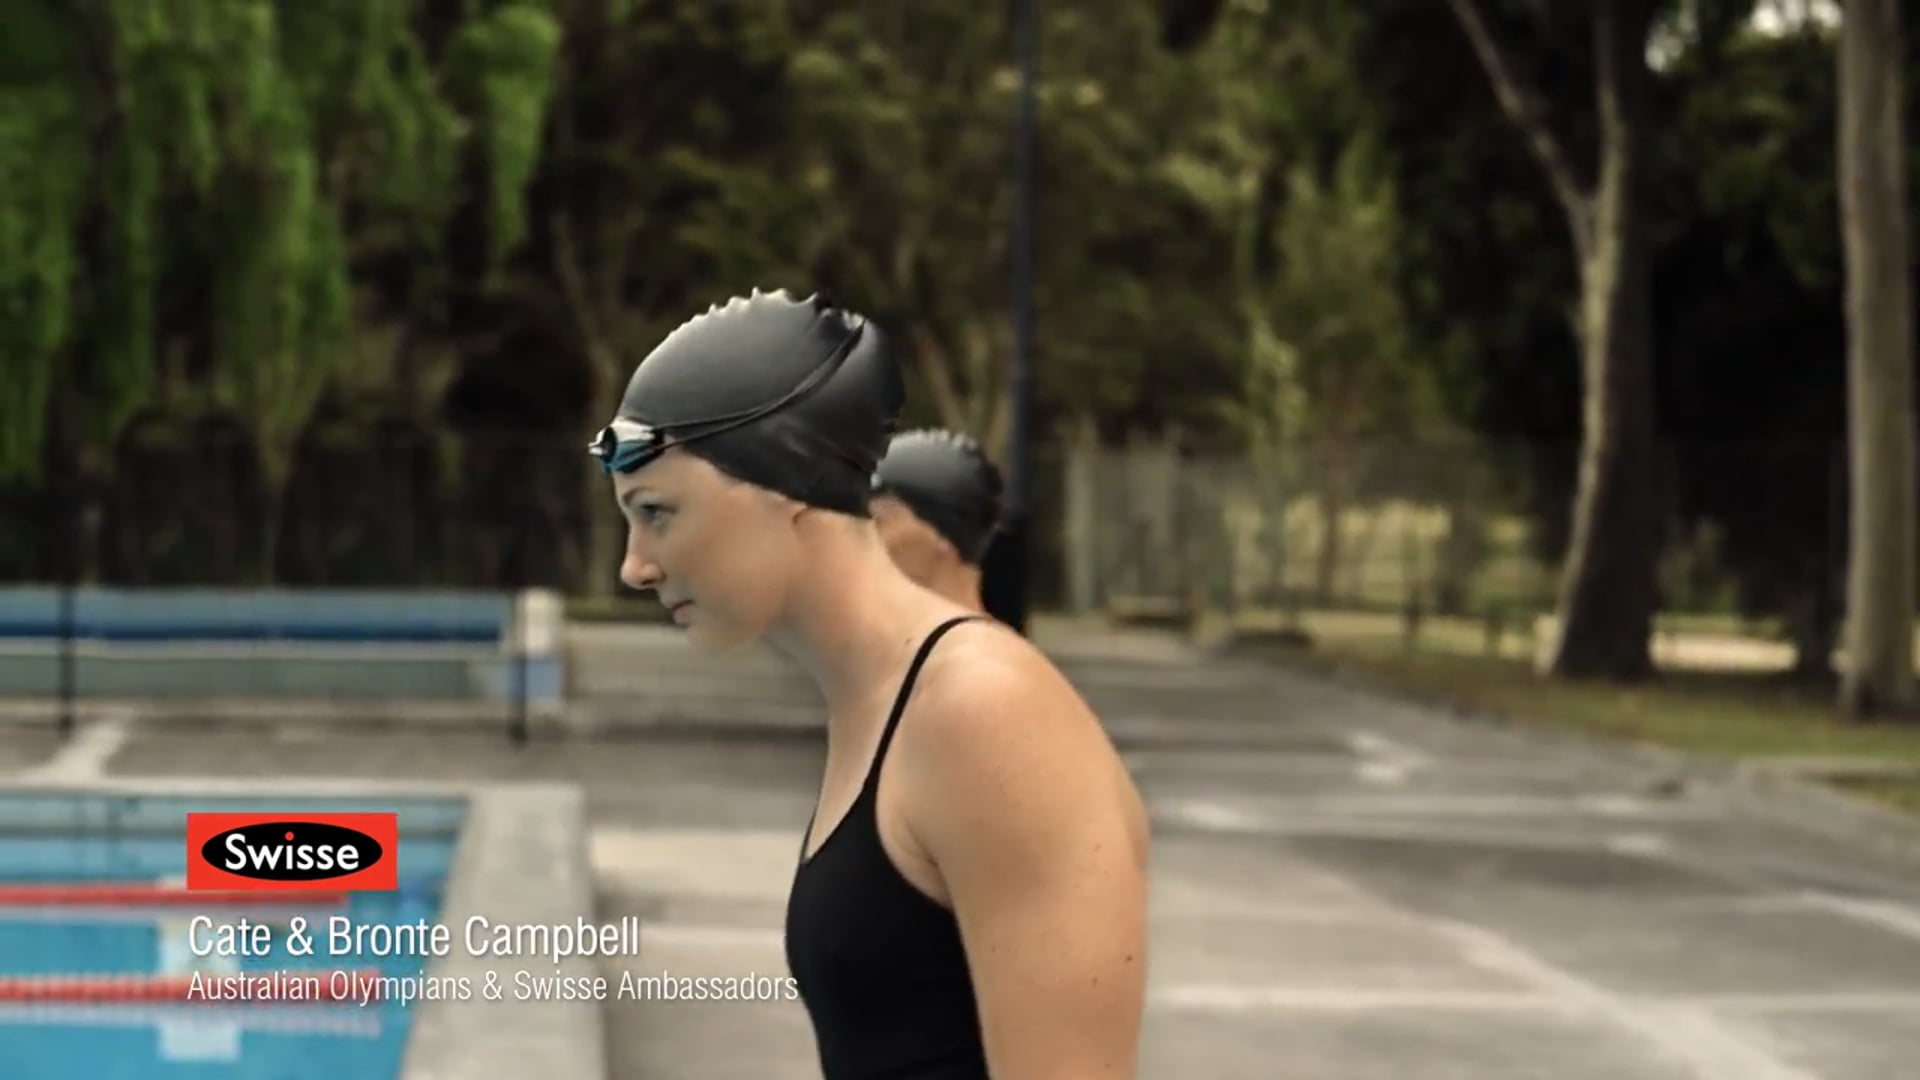 Campbell Sisters - Swisse Olympics Brand TV Commercial